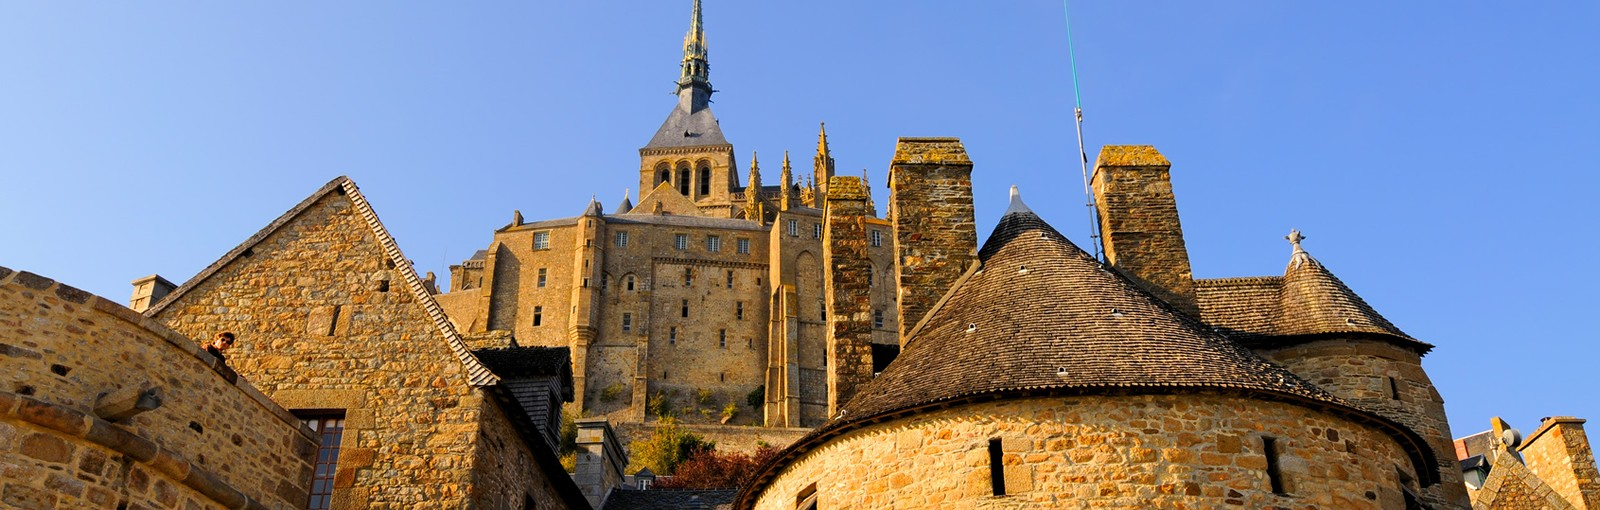 Tours Overnight to the Mont-Saint-Michel with a hike across the bay - Brittany - Multiday tours from Paris